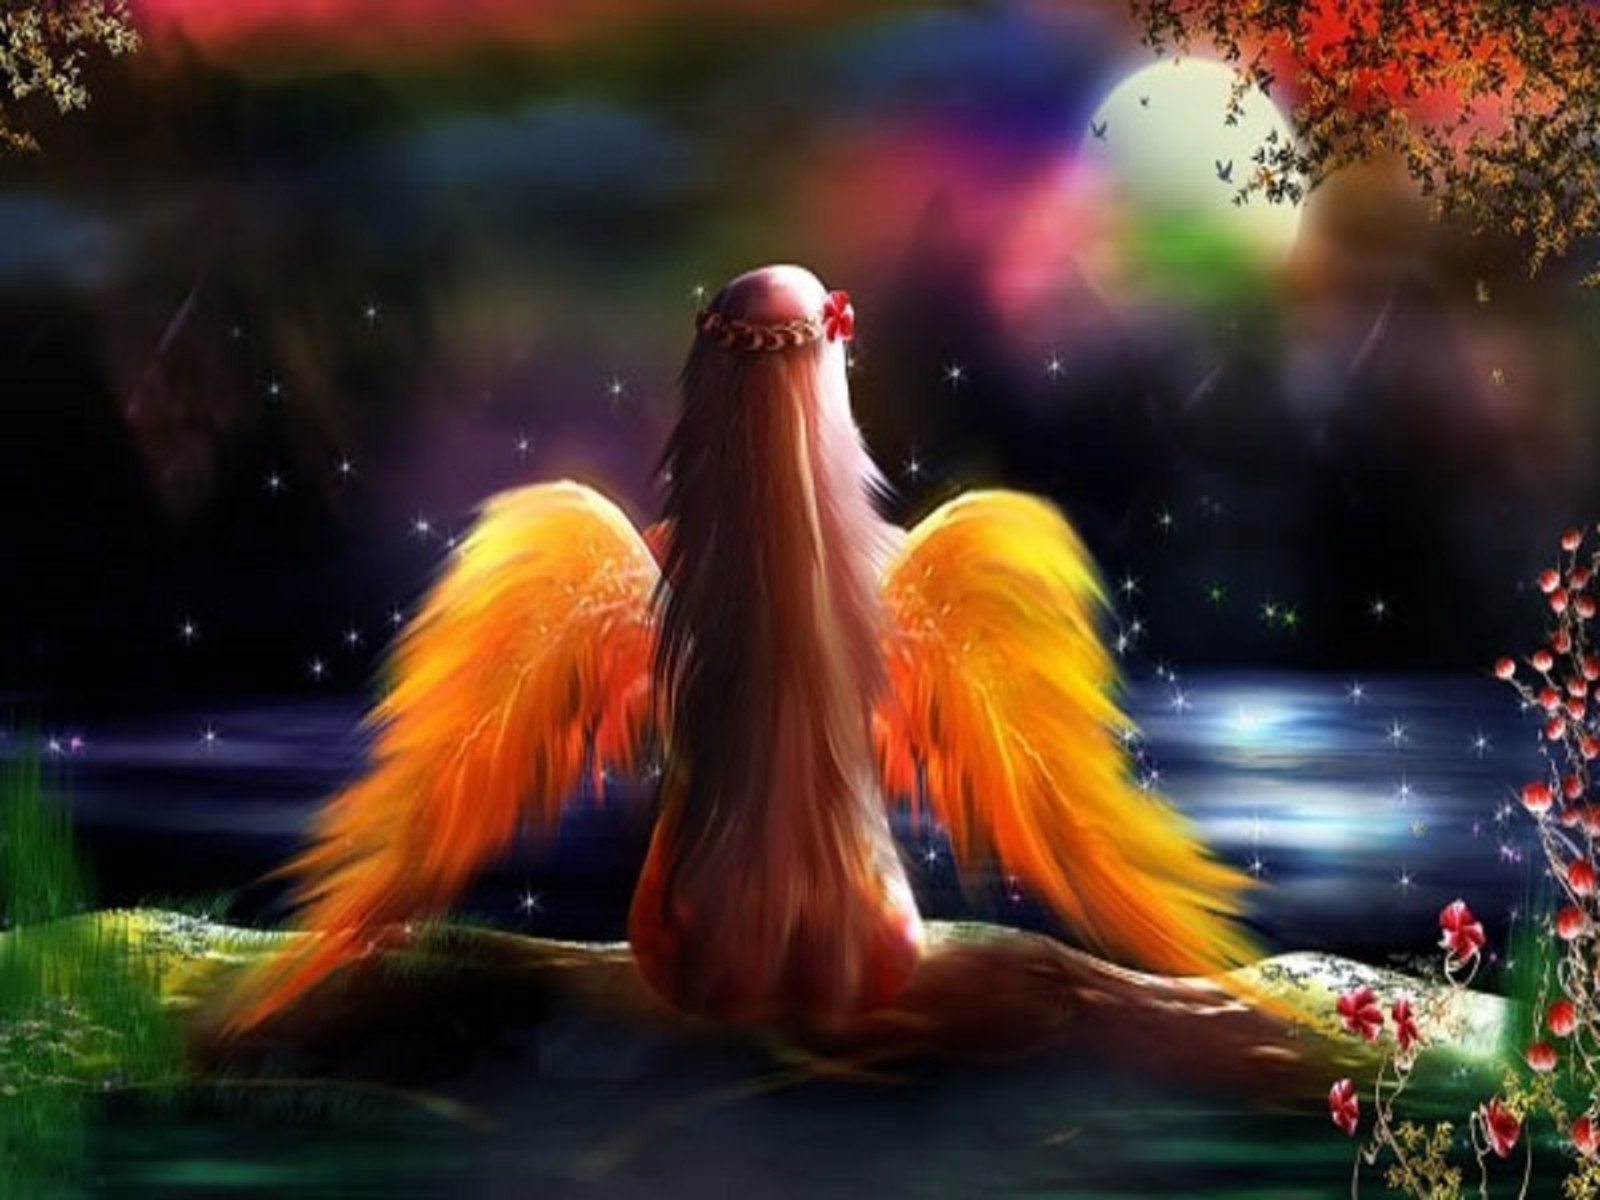 Awesome Hd Wallpaper Collection Cute Anime Mythical Angel Wallpaper